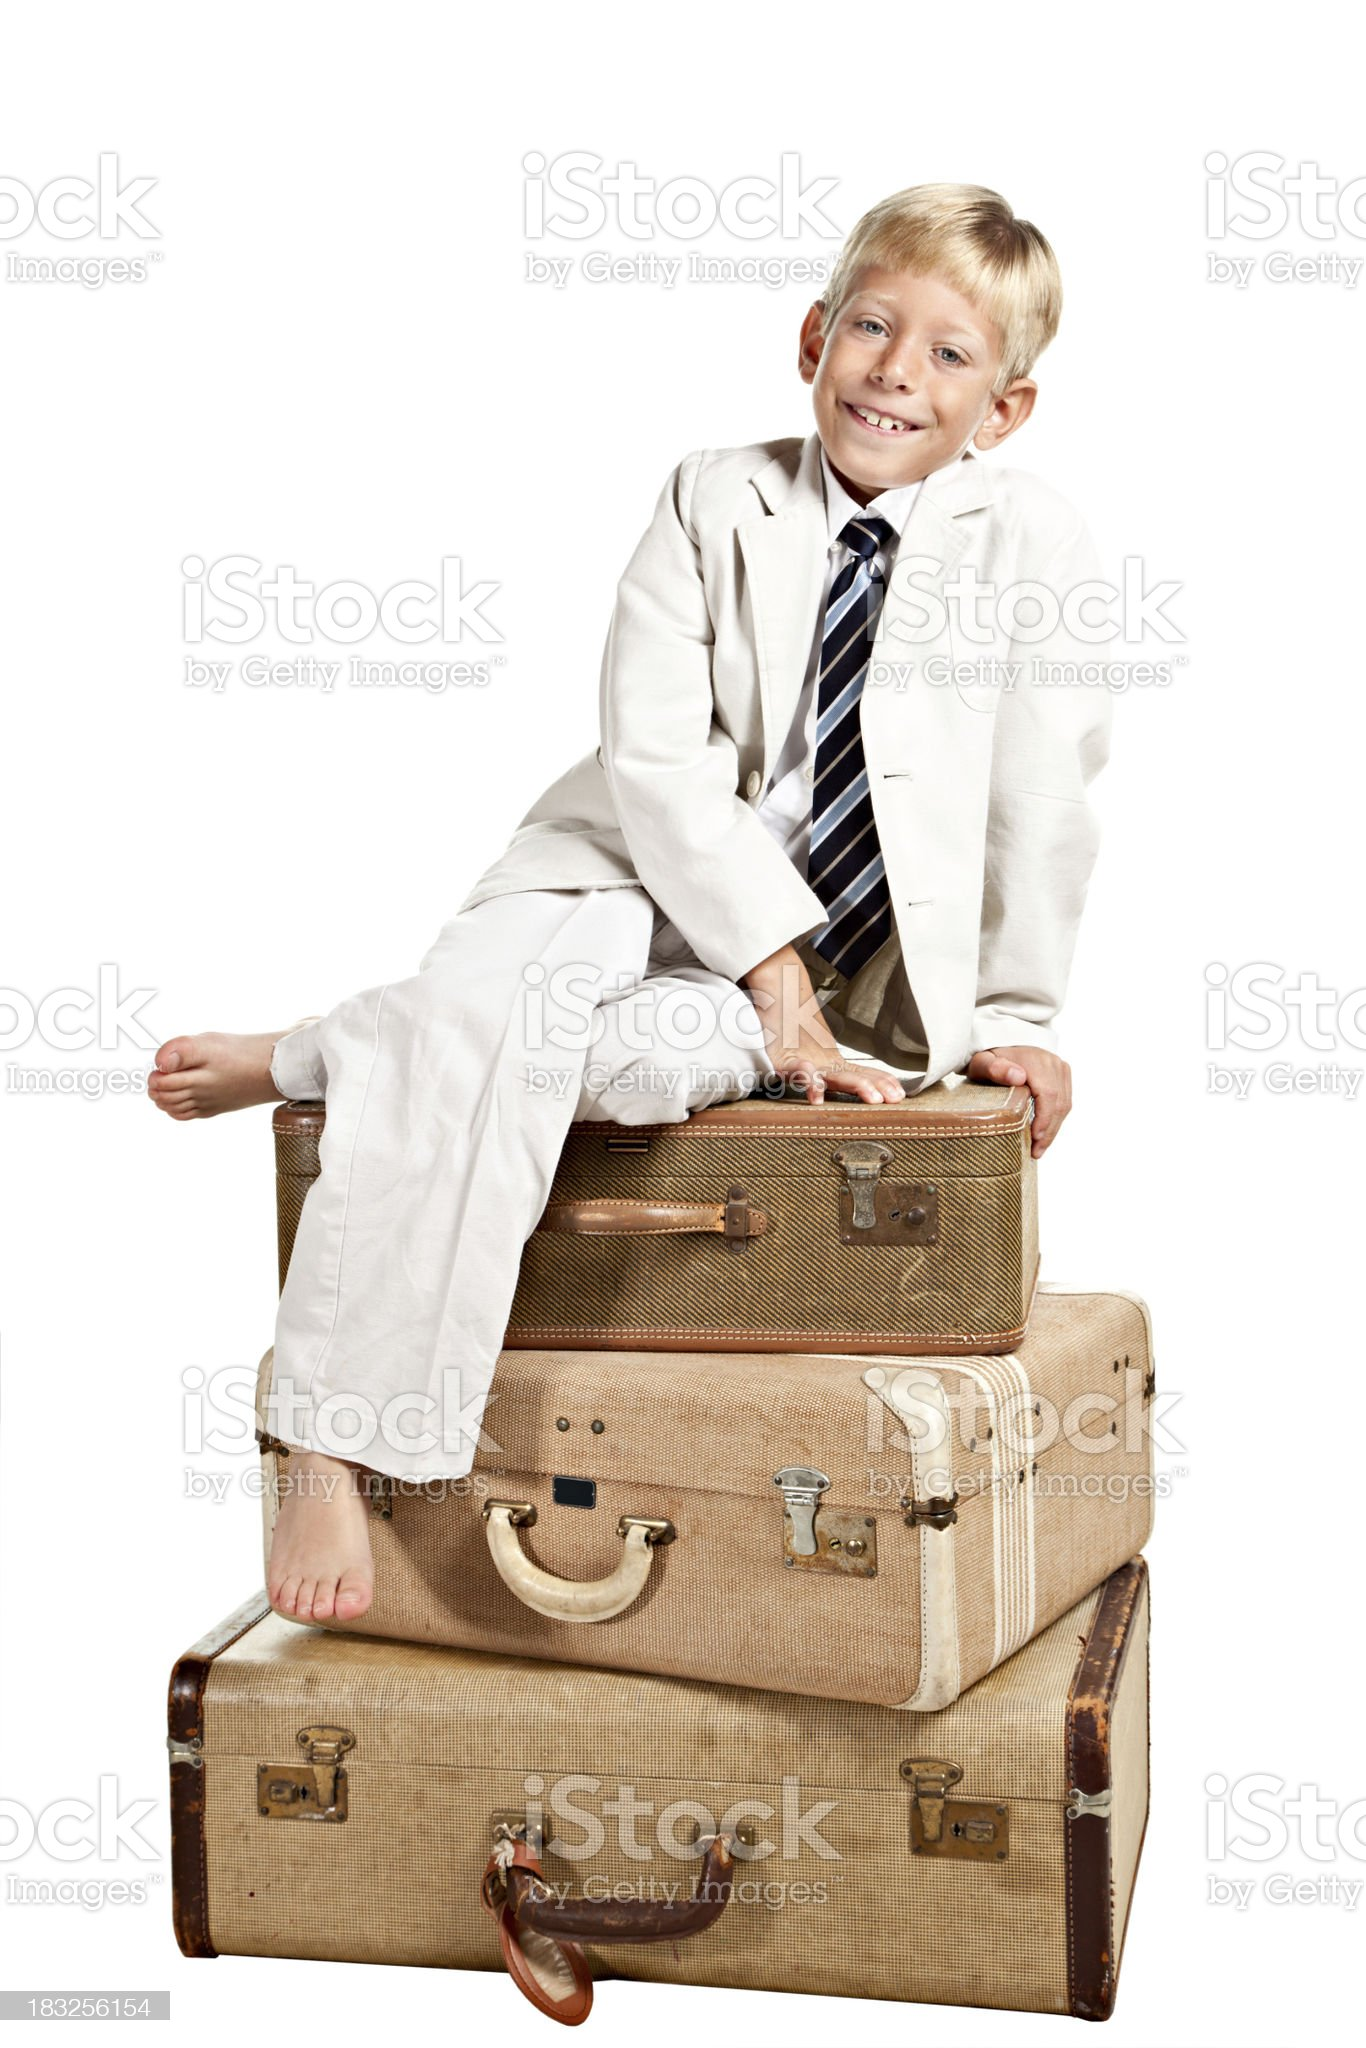 Little Boy Sits On Suitcases Isolated royalty-free stock photo